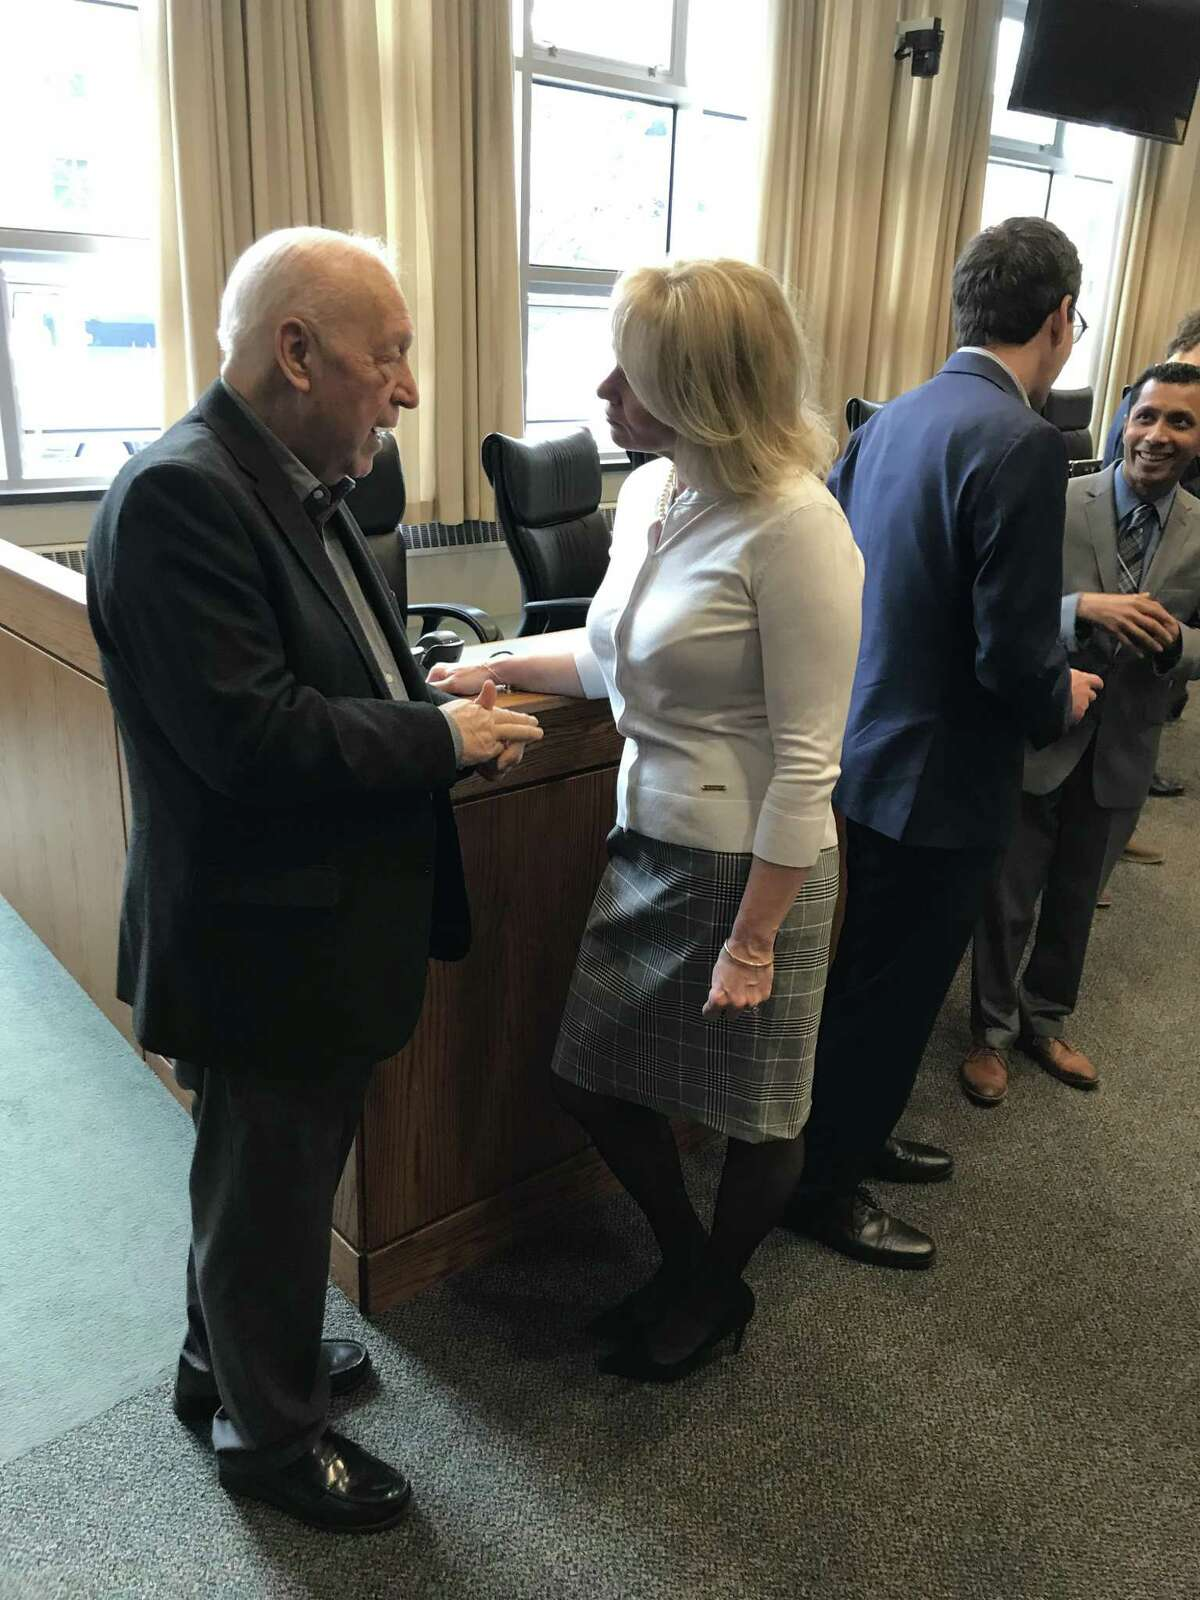 Lt. Gov. Susan Bysiewicz joined Congresswoman Rosa DeLauro, Congressman John Larson, Middletown Deputy Mayor Bob Santangelo, Councilwoman Mary Bartolotta, and other members of the Middletown community on Friday, March 15, 2019, to highlight the importance of a complete count for the 2020 U.S. Census.